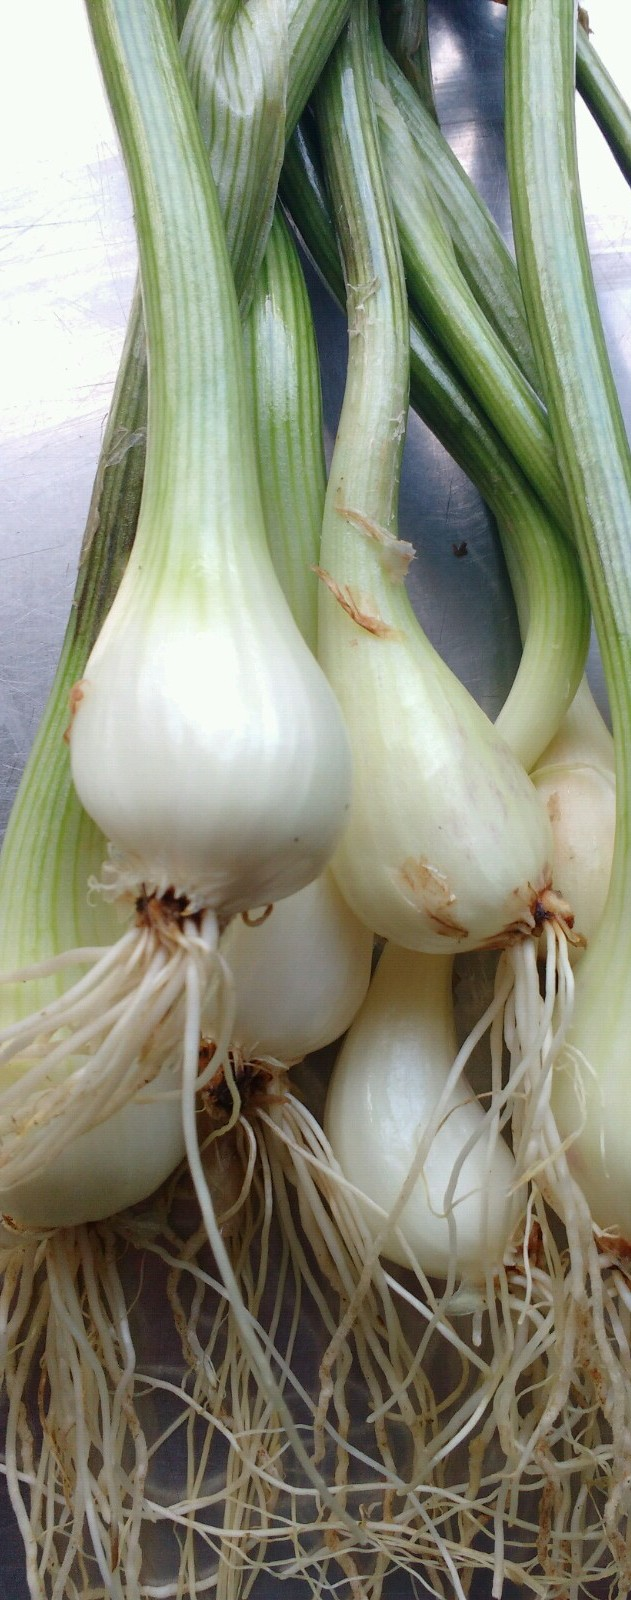 Fresh Griselle Shallots - heritage variety